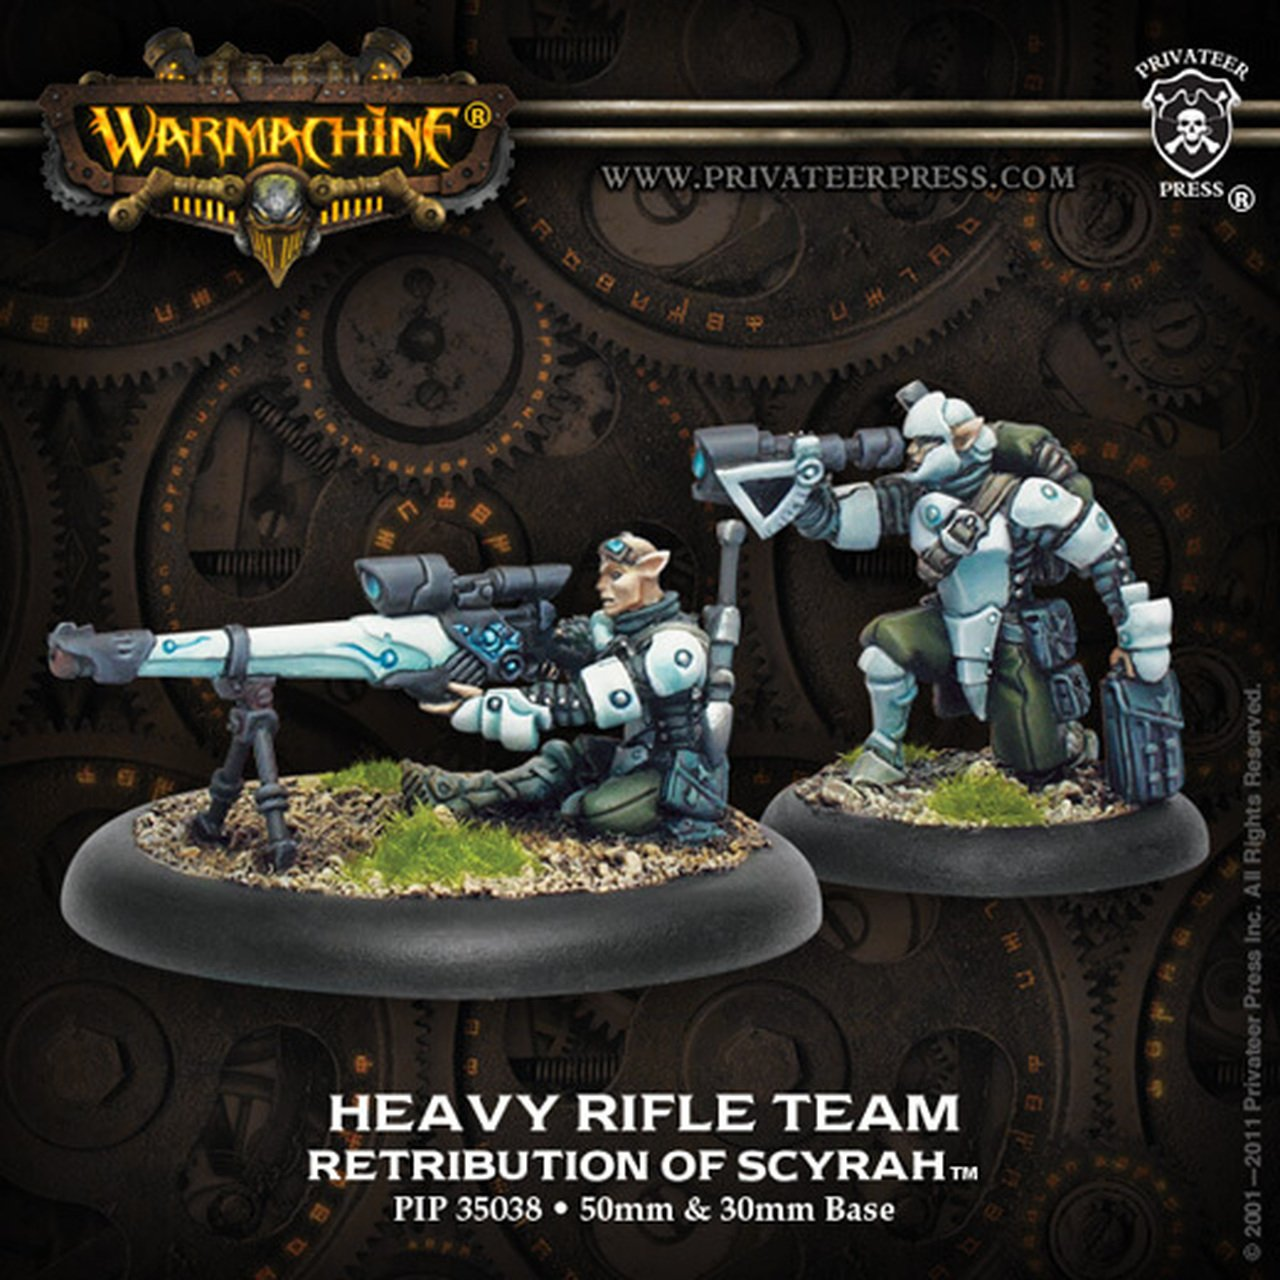 Retrubution of Scyrah - Heavy Rifle Team Houseguard Weapon Crew | All About Games